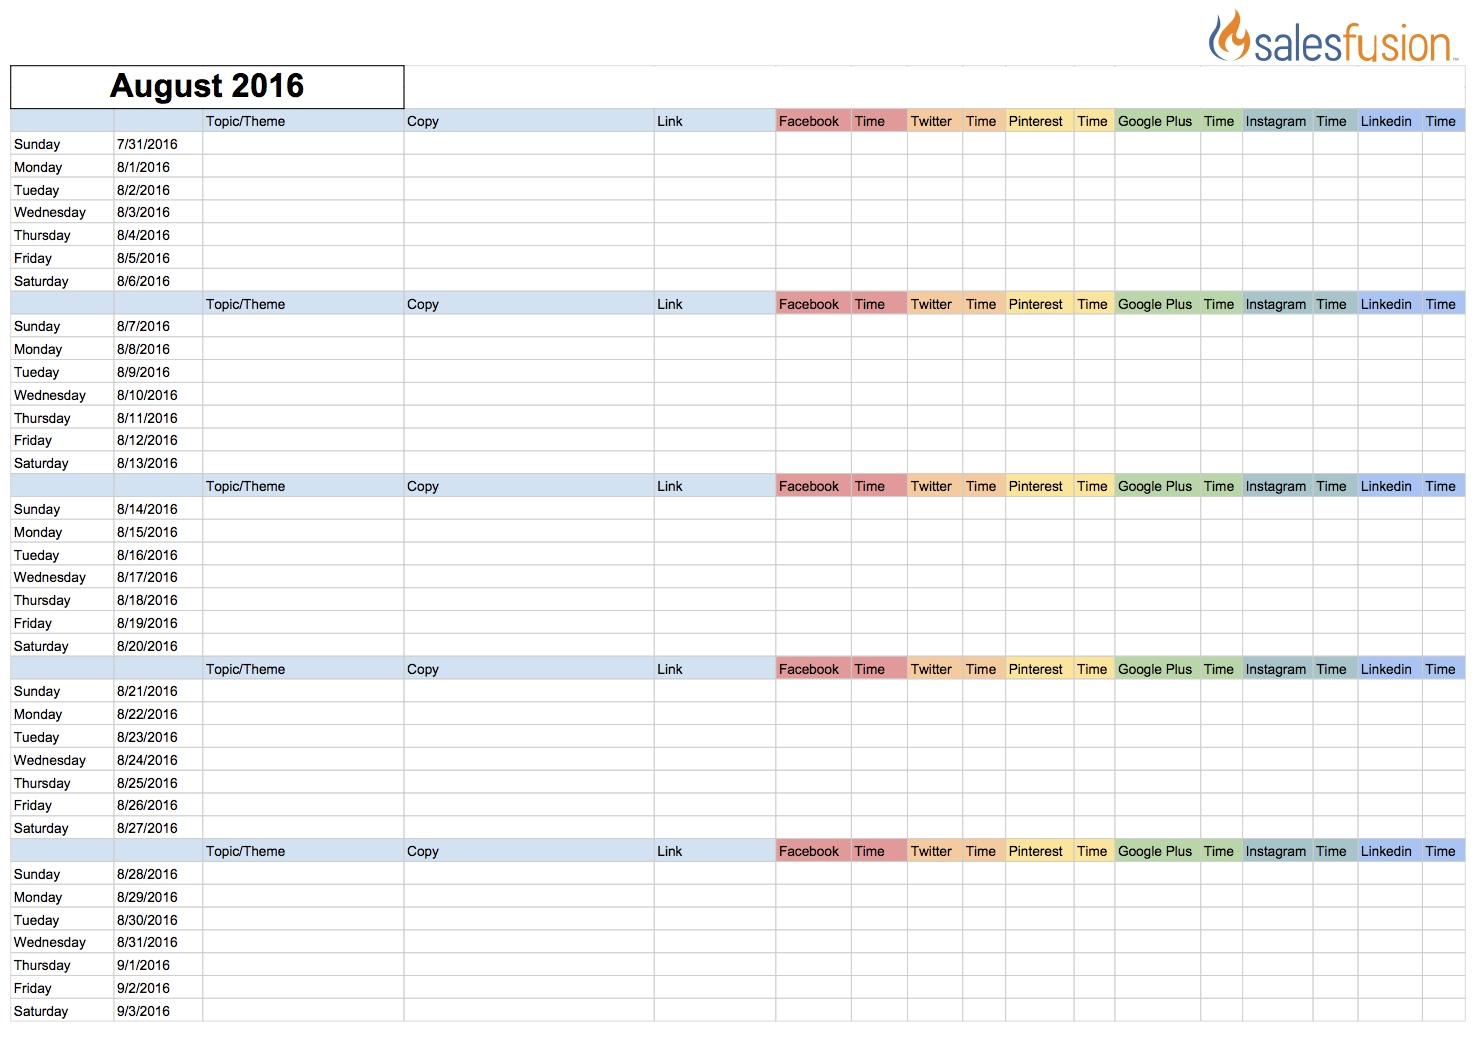 Social Media Content Calendar Template | Salesfusion intended for Social Media Posting Schedule Template